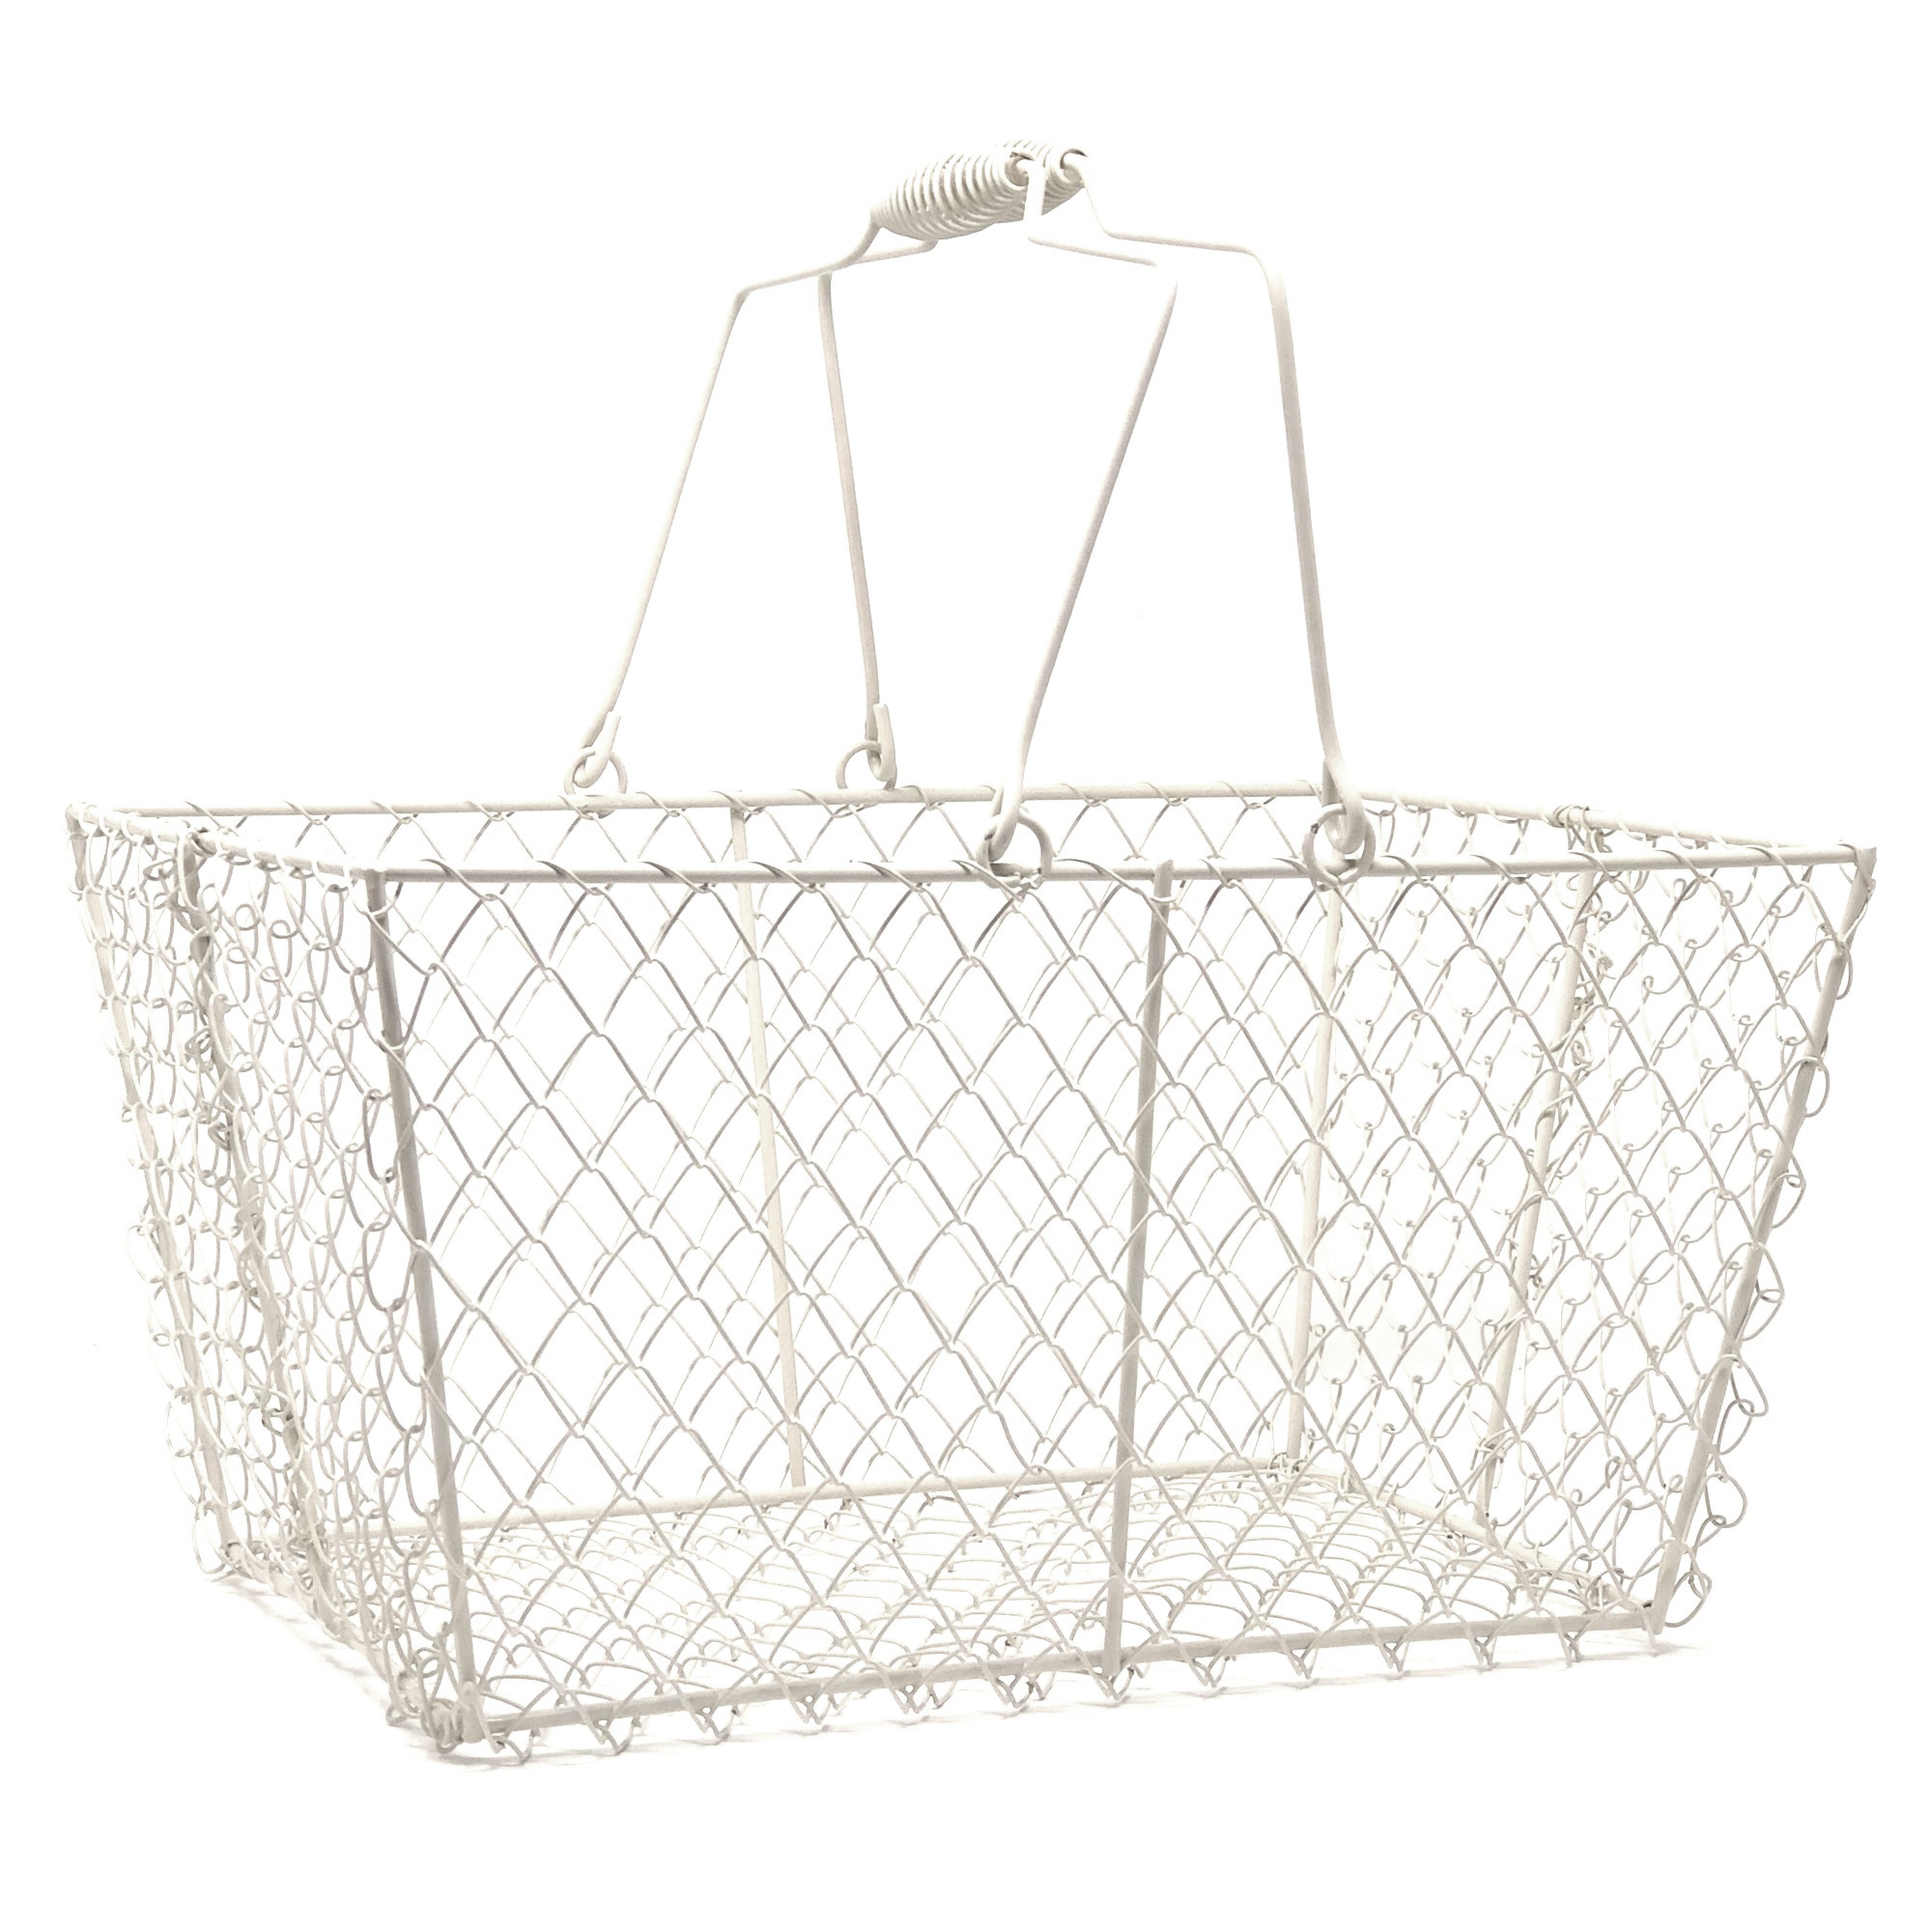 Stella Rectangular Wire Mesh Shopping Basket - Cream 12in